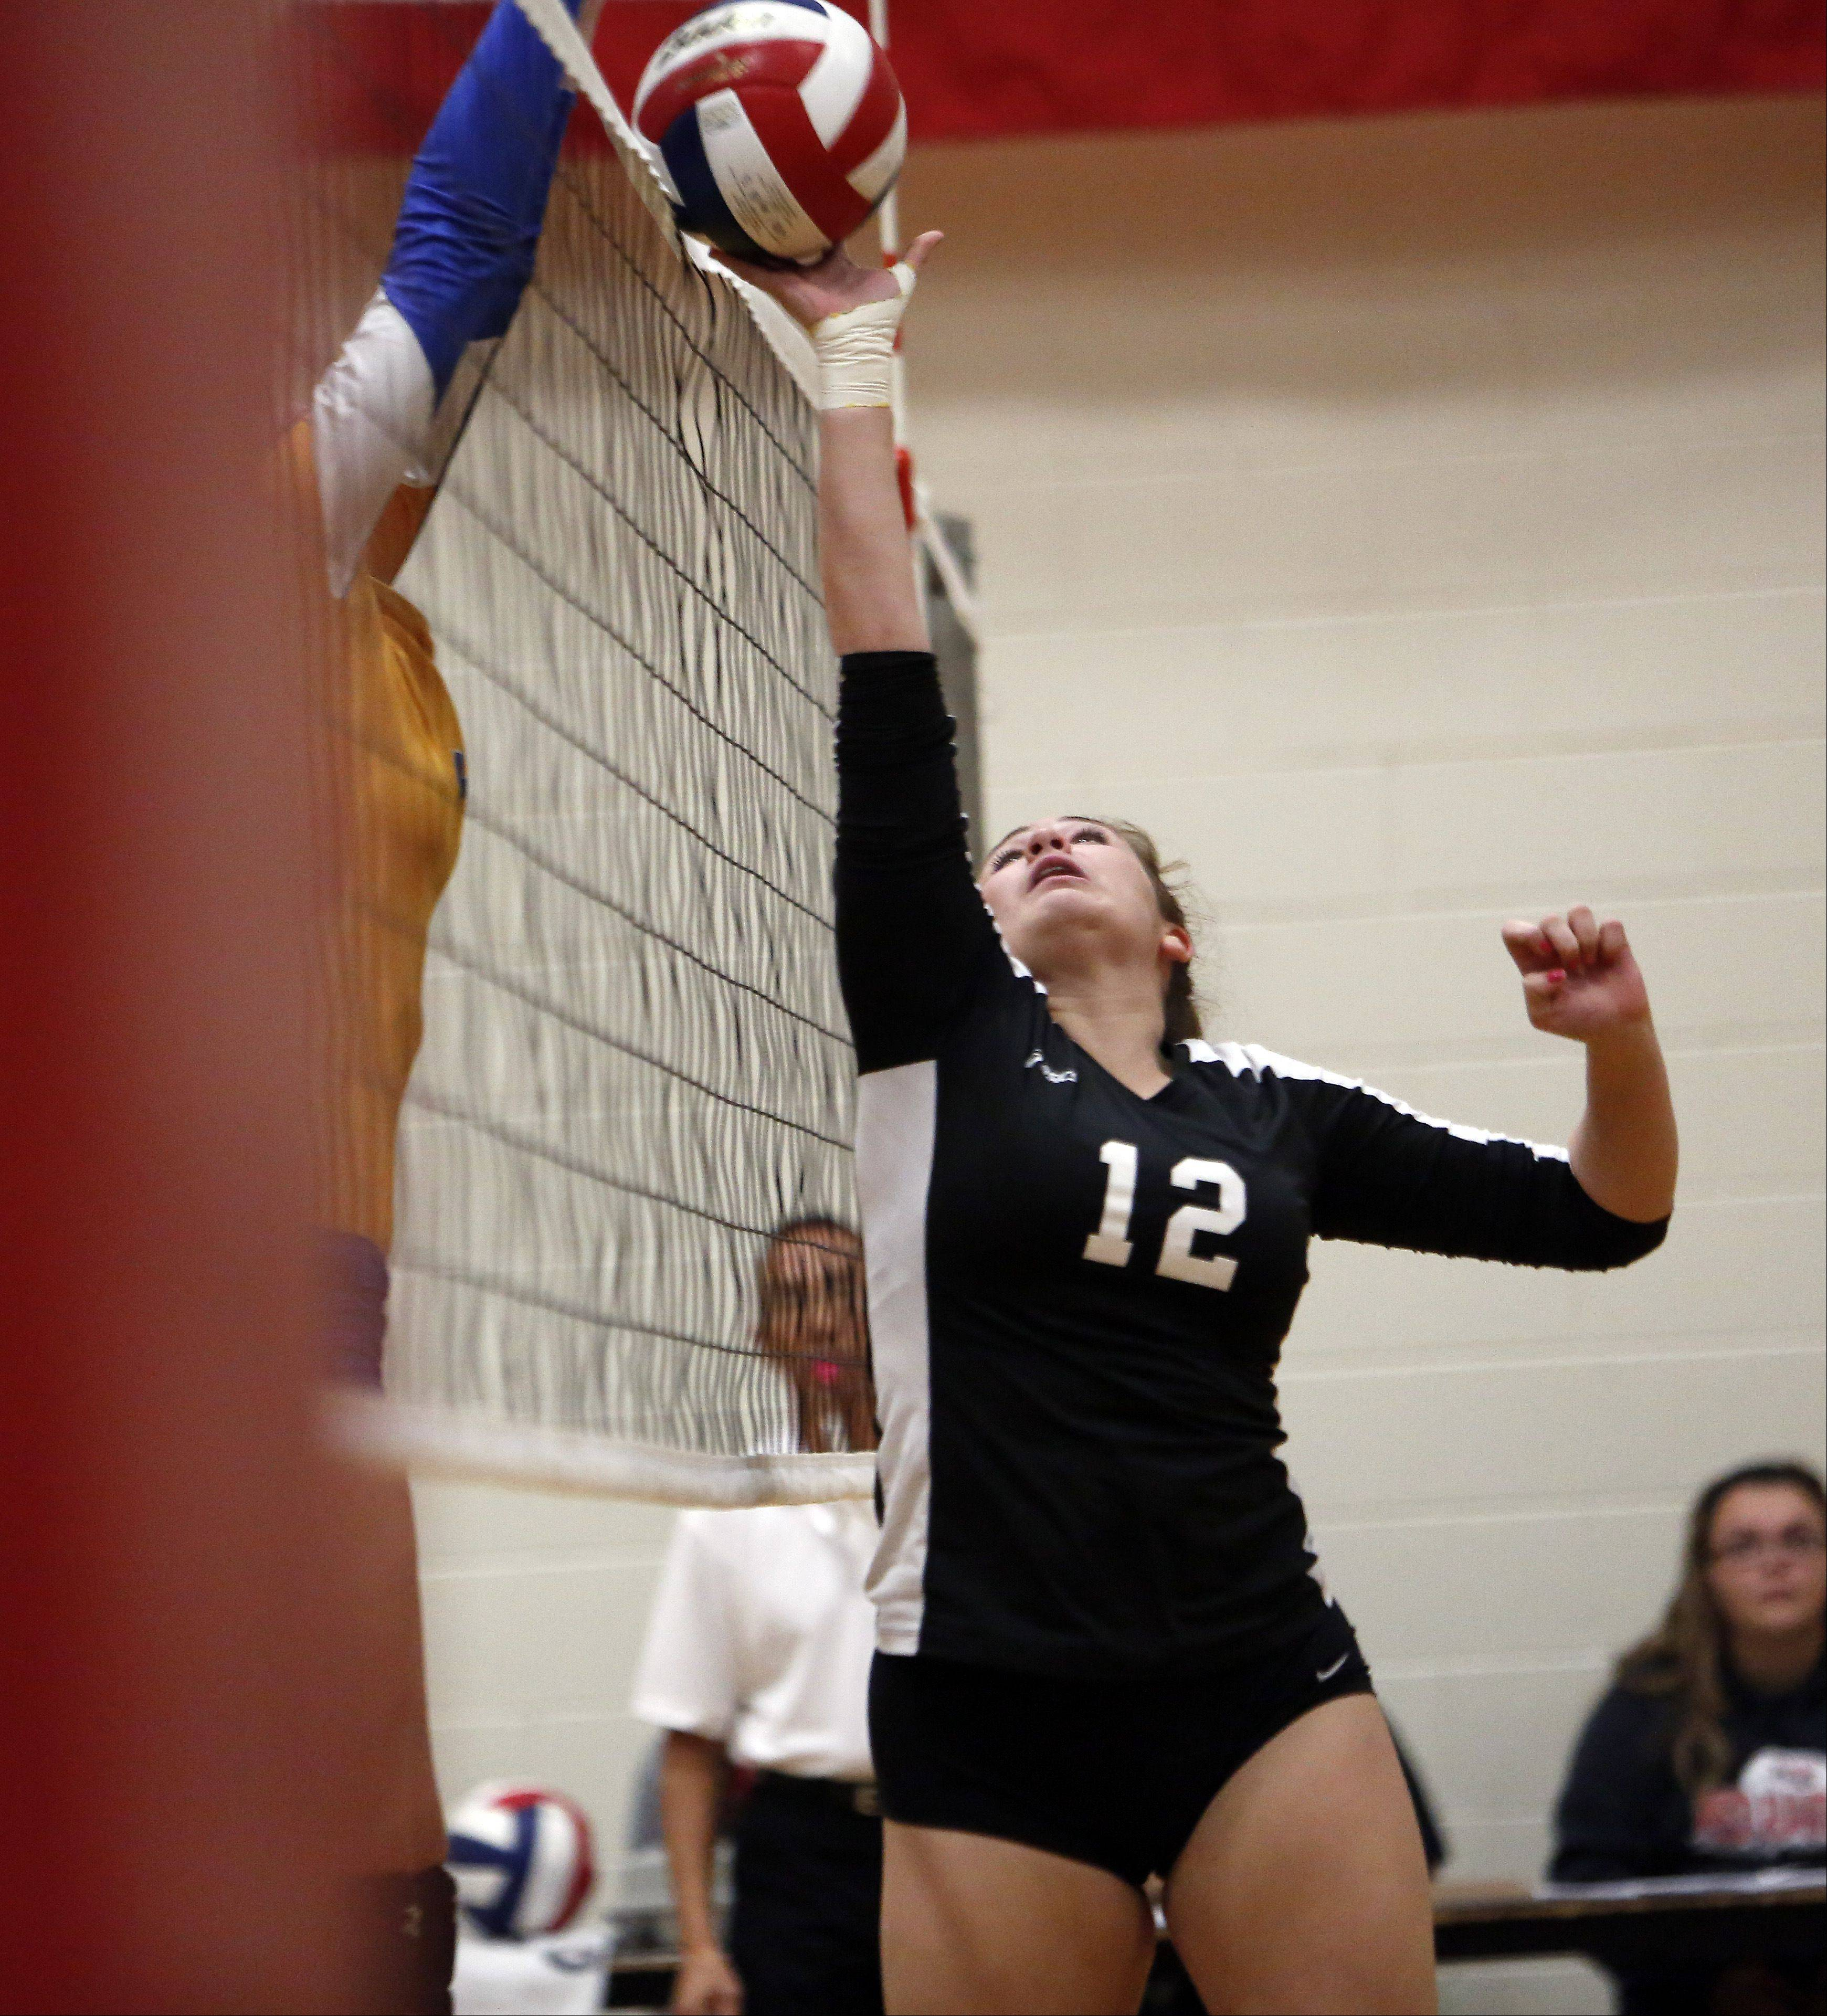 Glenbard North's Maria Perino tries to push one over against Joliet Central during the 29th Annual Huntley High School Volleyball Tournament Saturday.